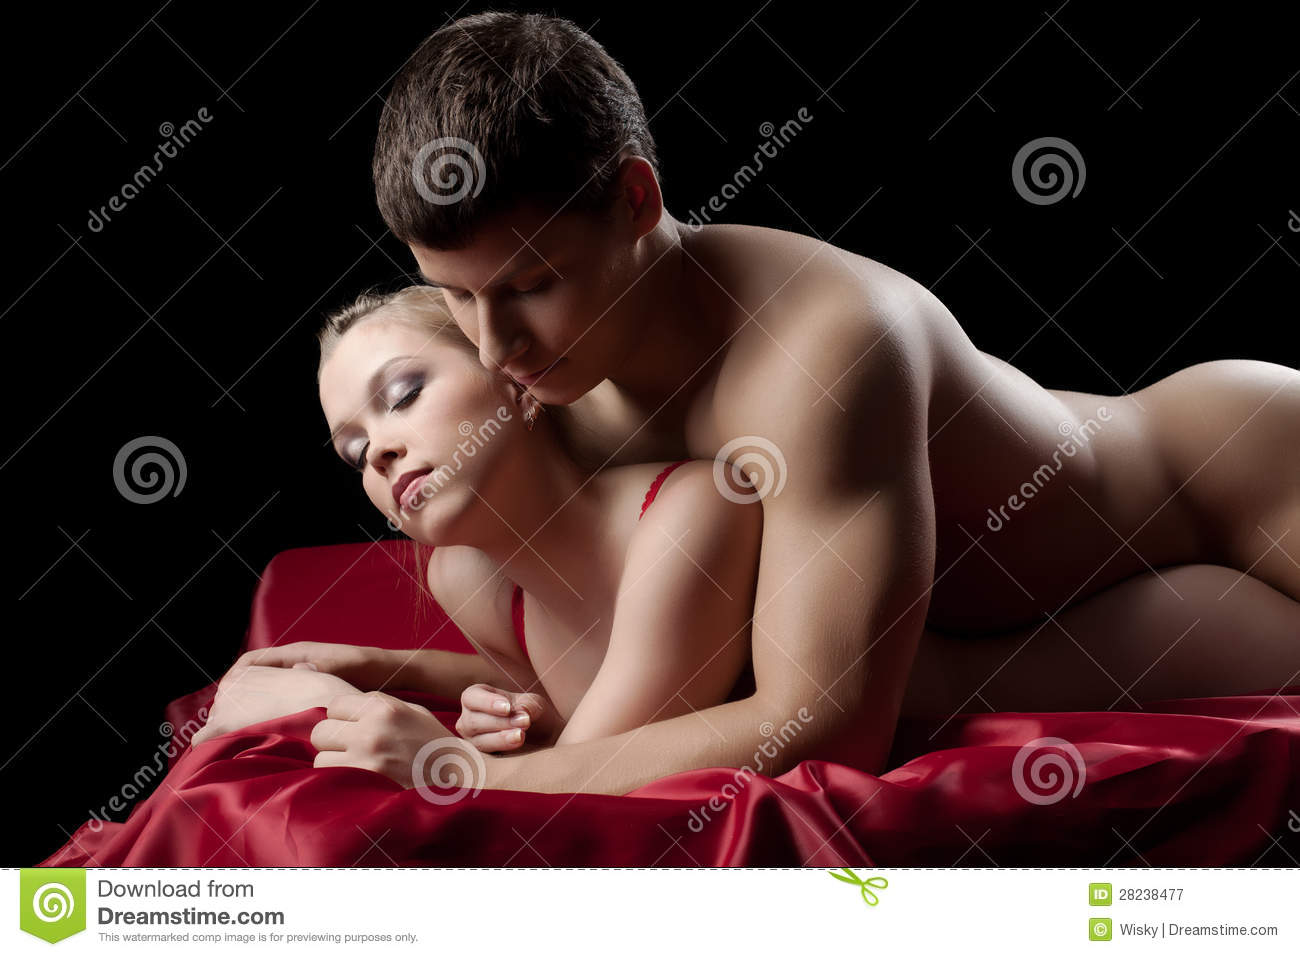 sex having with girl pics